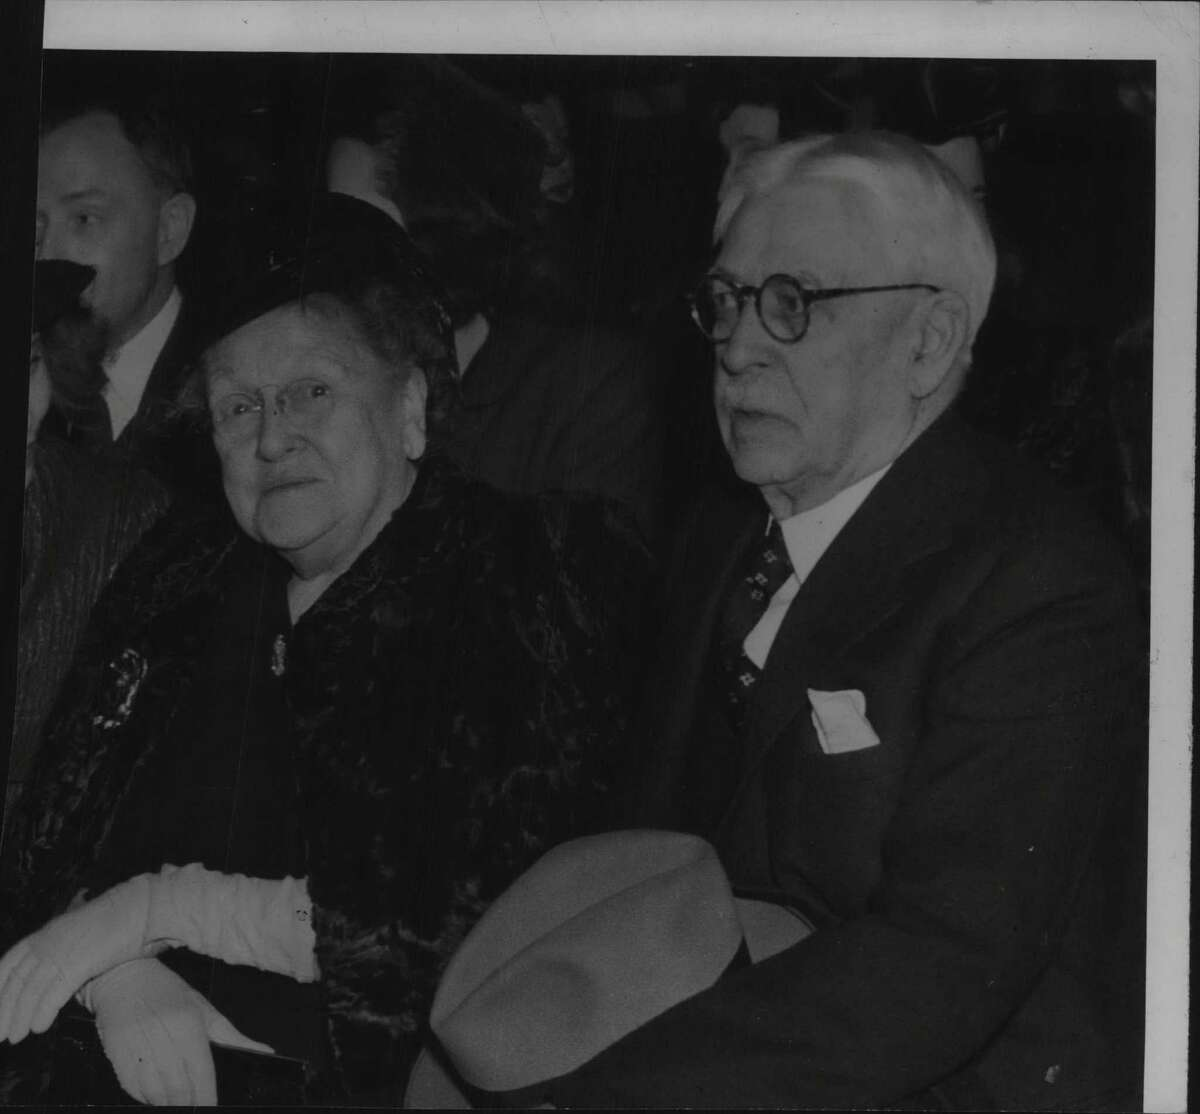 Mr. & Mrs. Nathan Miller, former Governor of New York State. January 13, 1943 (Times Union Archive)